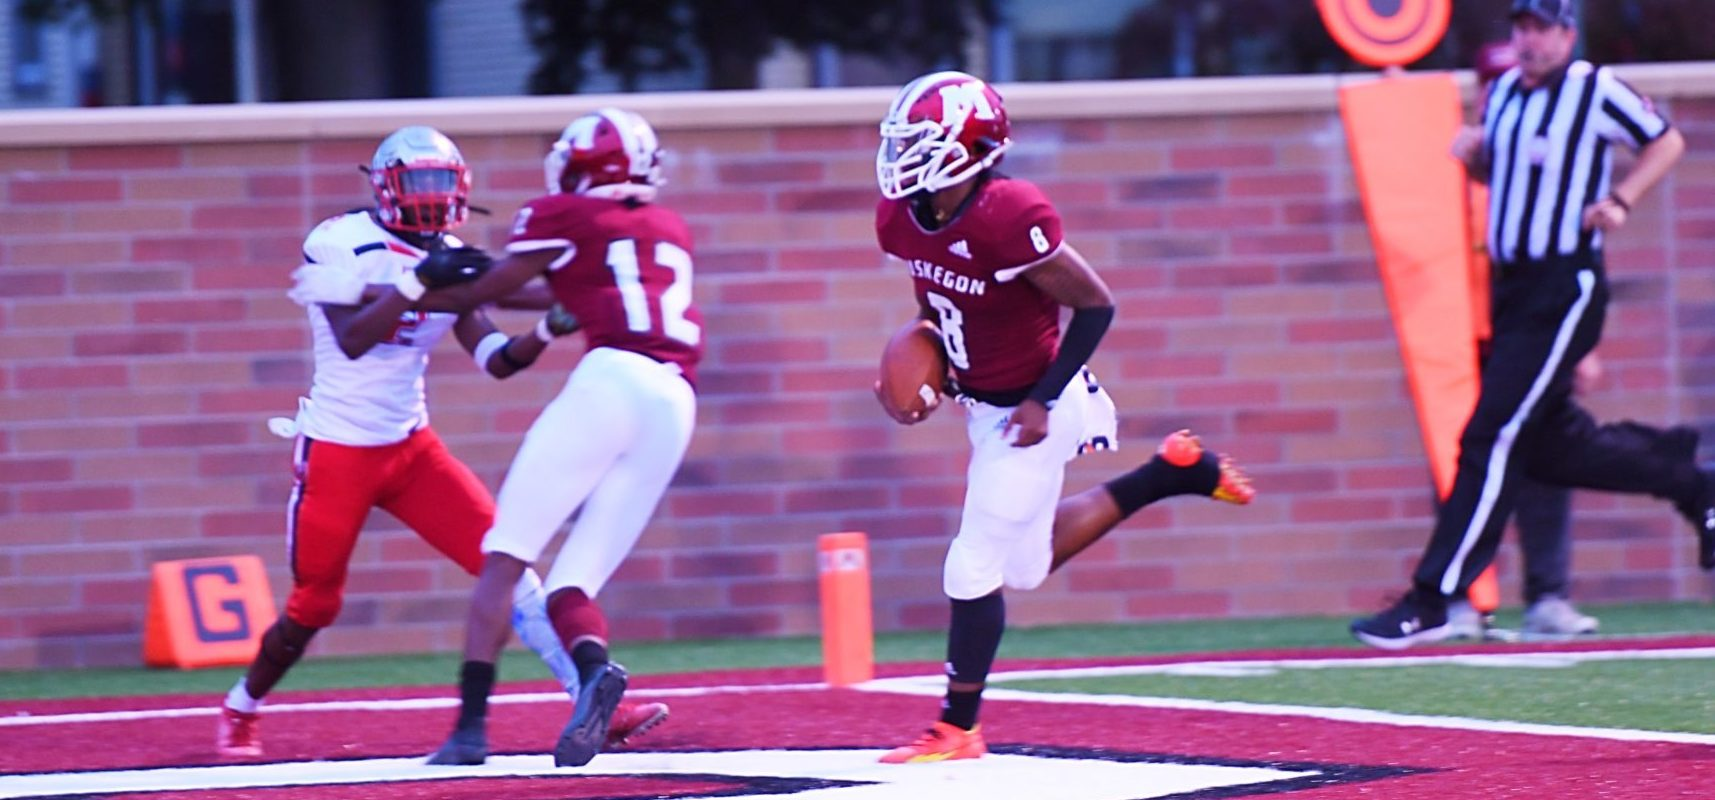 Muskegon Big Reds display offensive explosion in 58-0 thrashing of GR Union